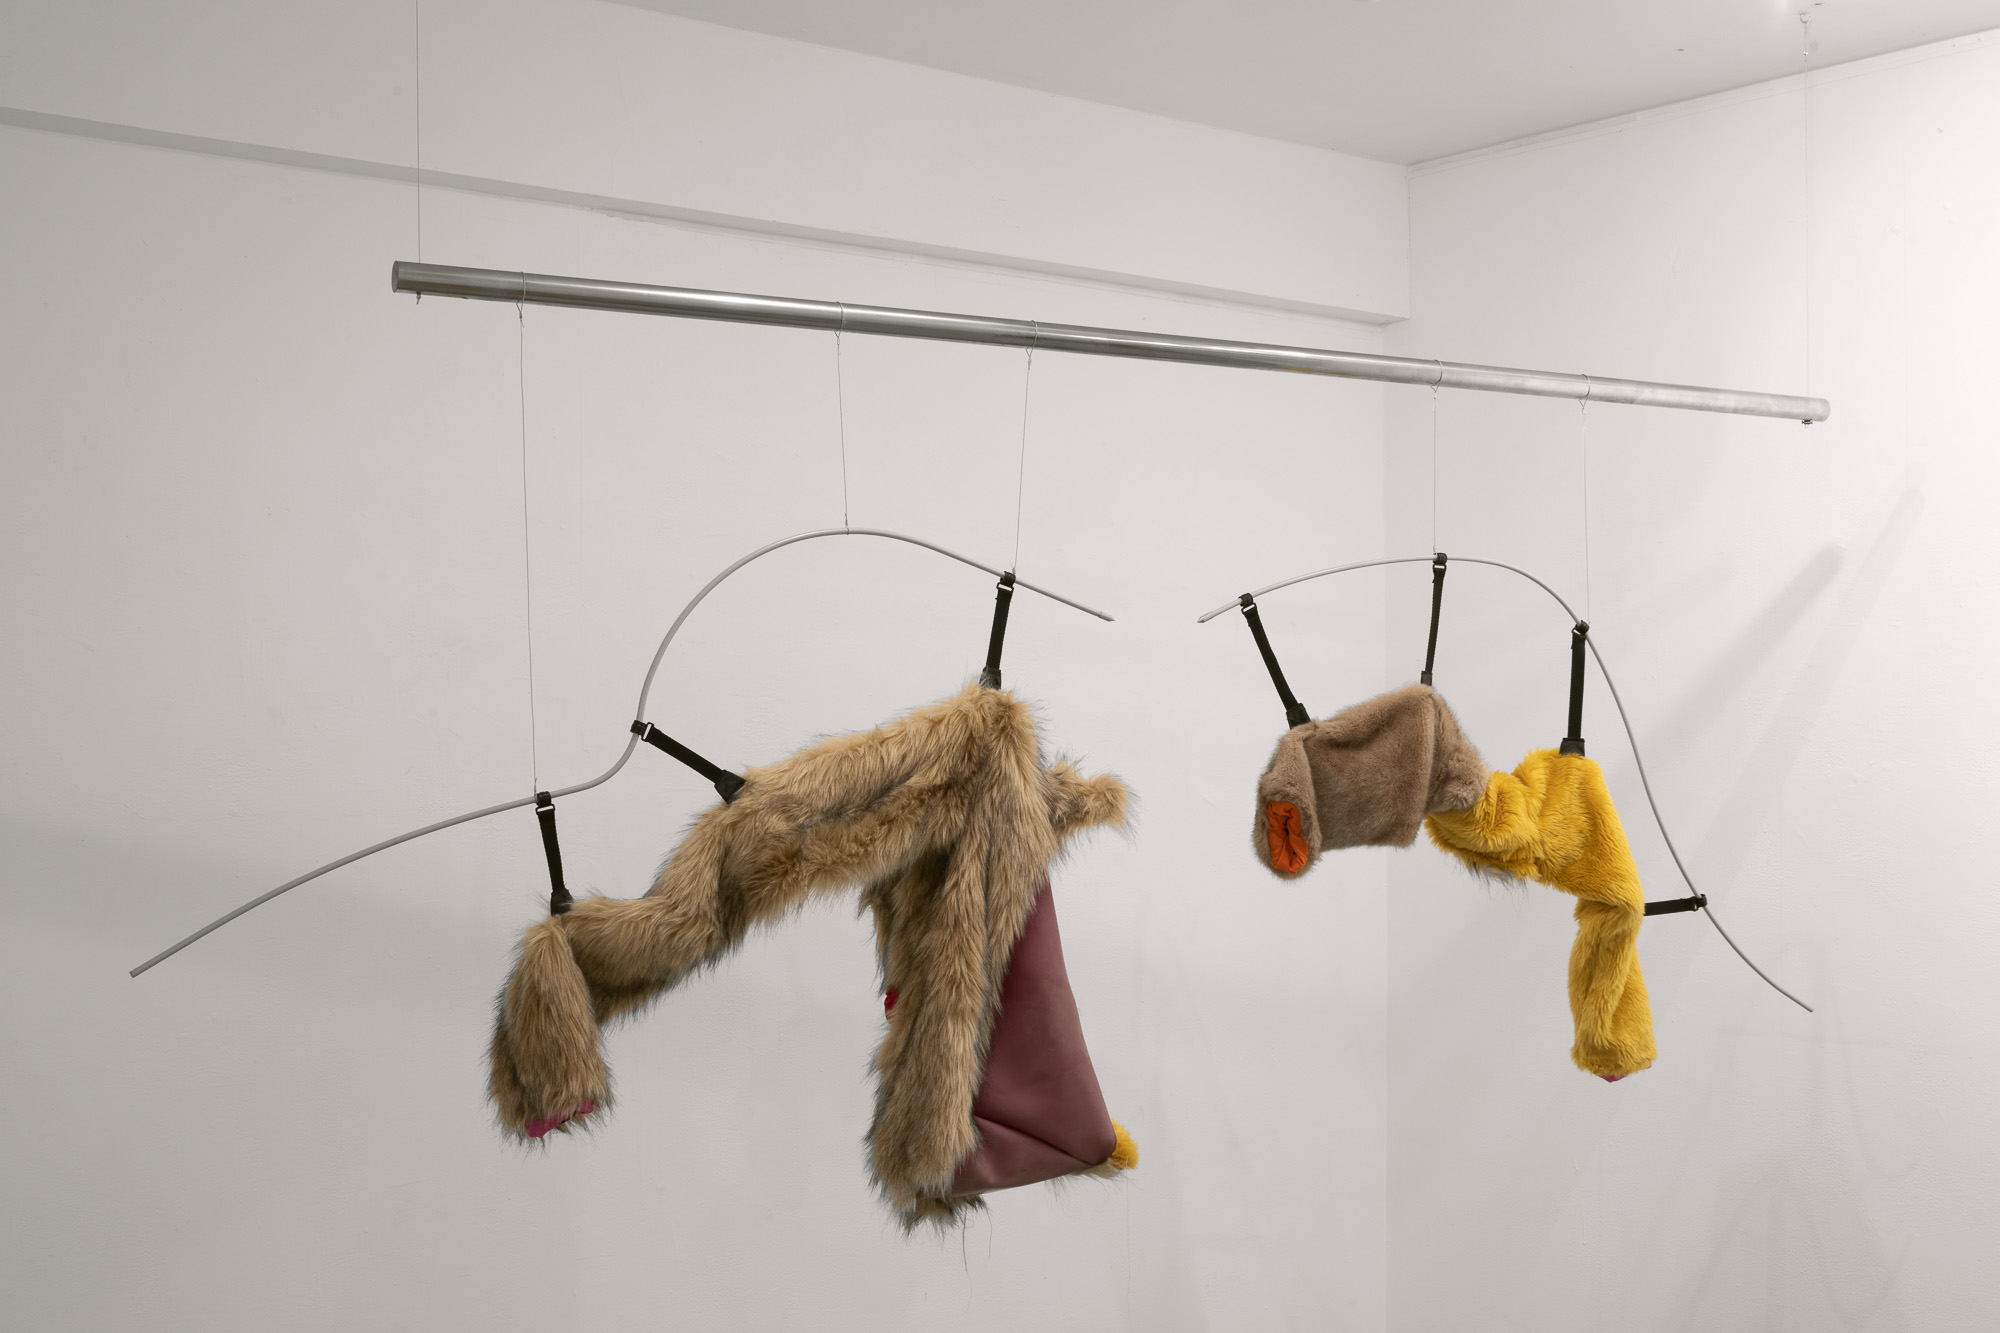 Tent (detail), 2019-2020, fur coats, sportswear, tent, latex, stainless steel, paint, steel cable